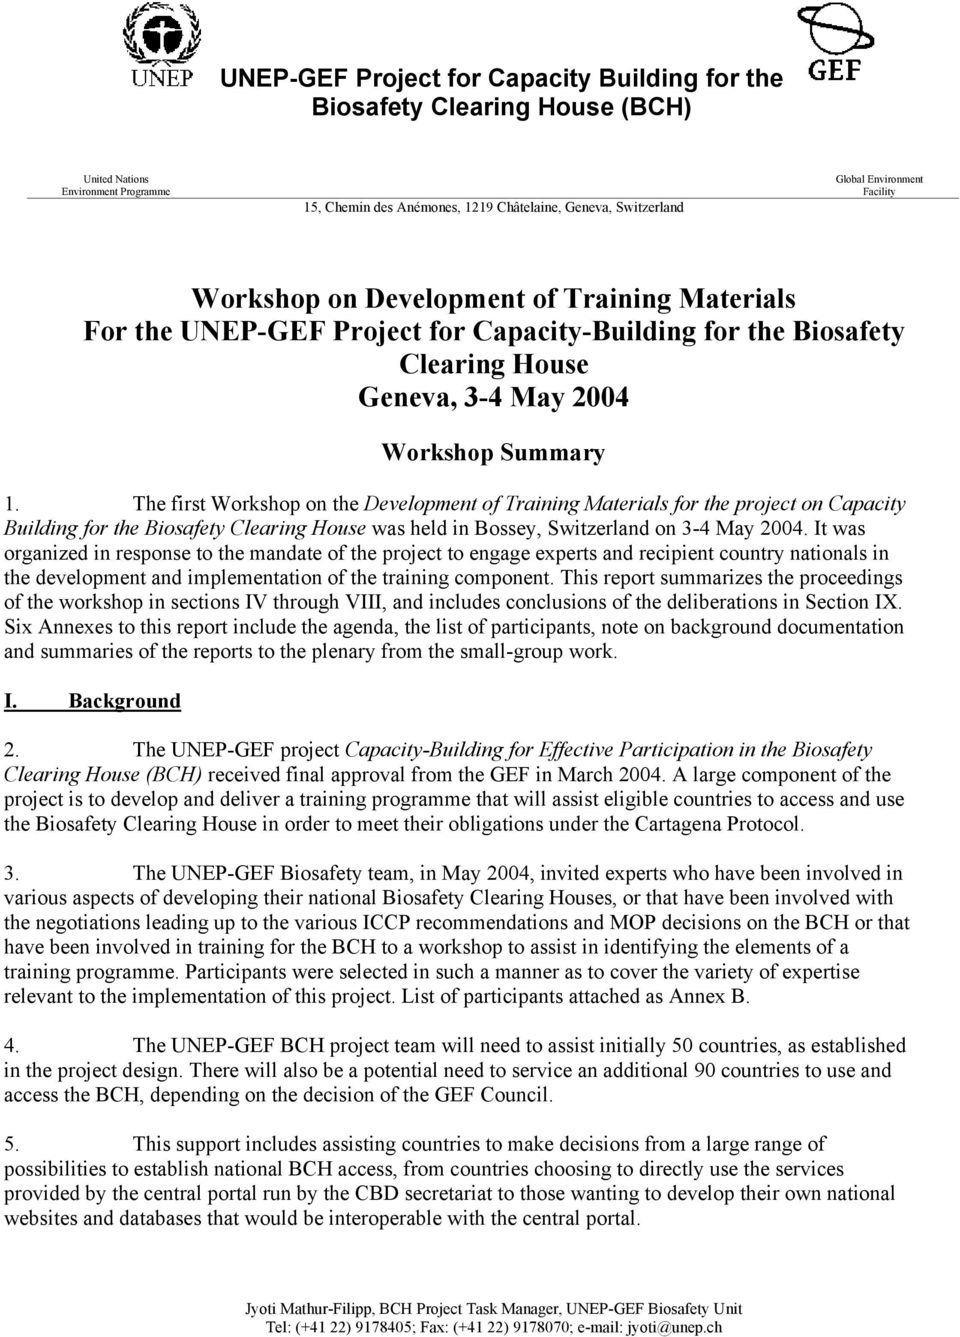 The first Workshop on the Development of Training Materials for the project on Capacity Building for the Biosafety Clearing House was held in Bossey, Switzerland on 3-4 May 2004.